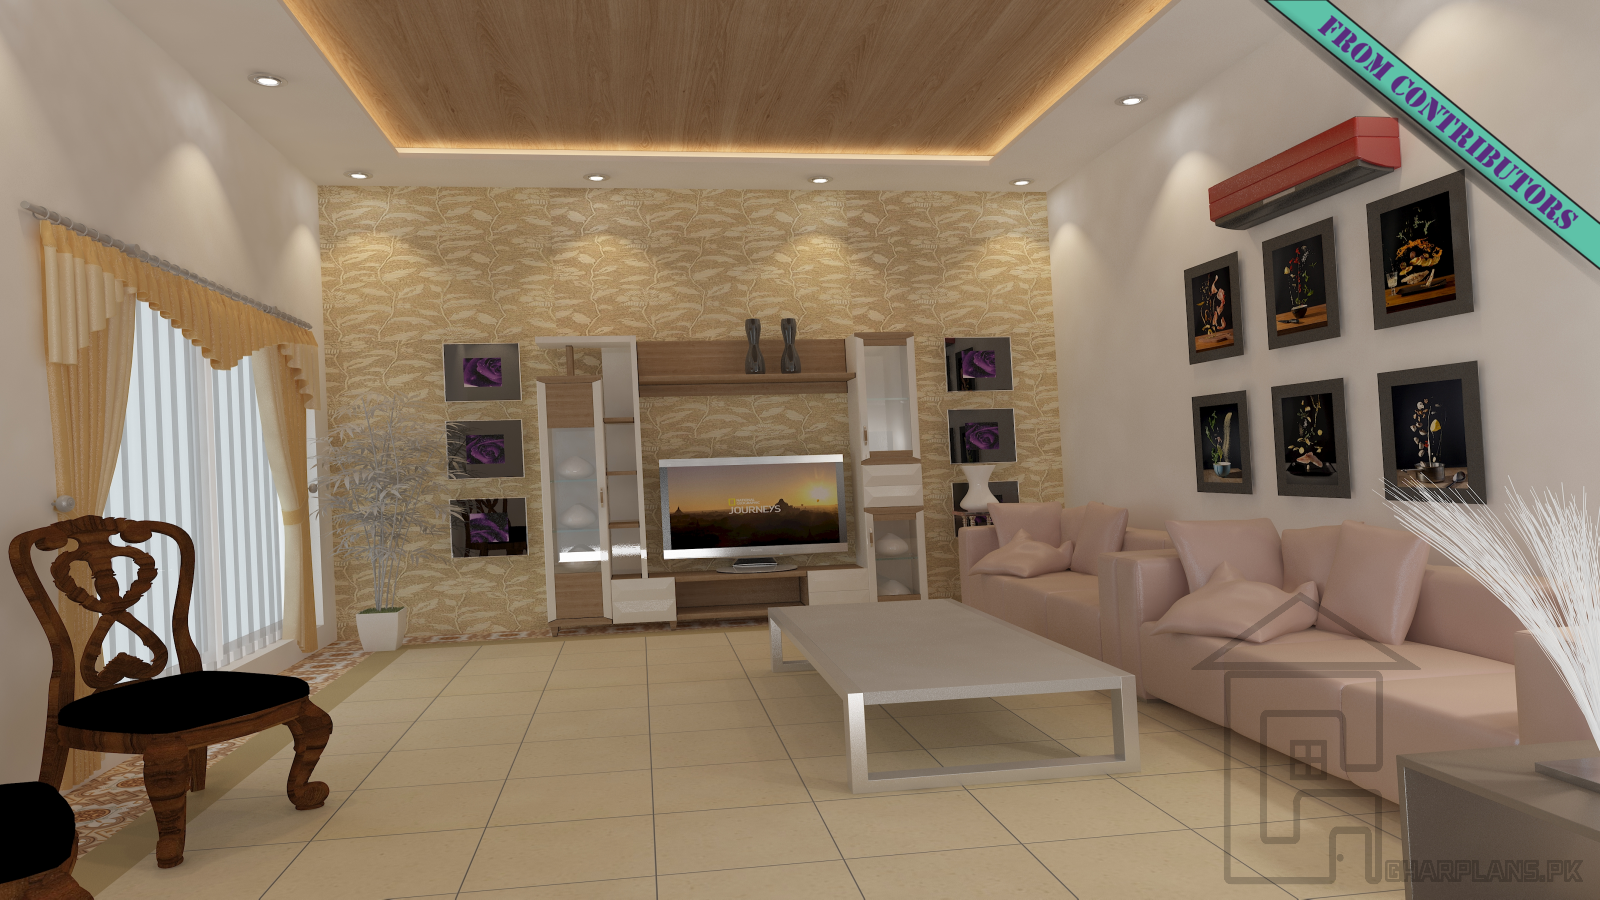 Sitting room interior design with media wall false ceiling